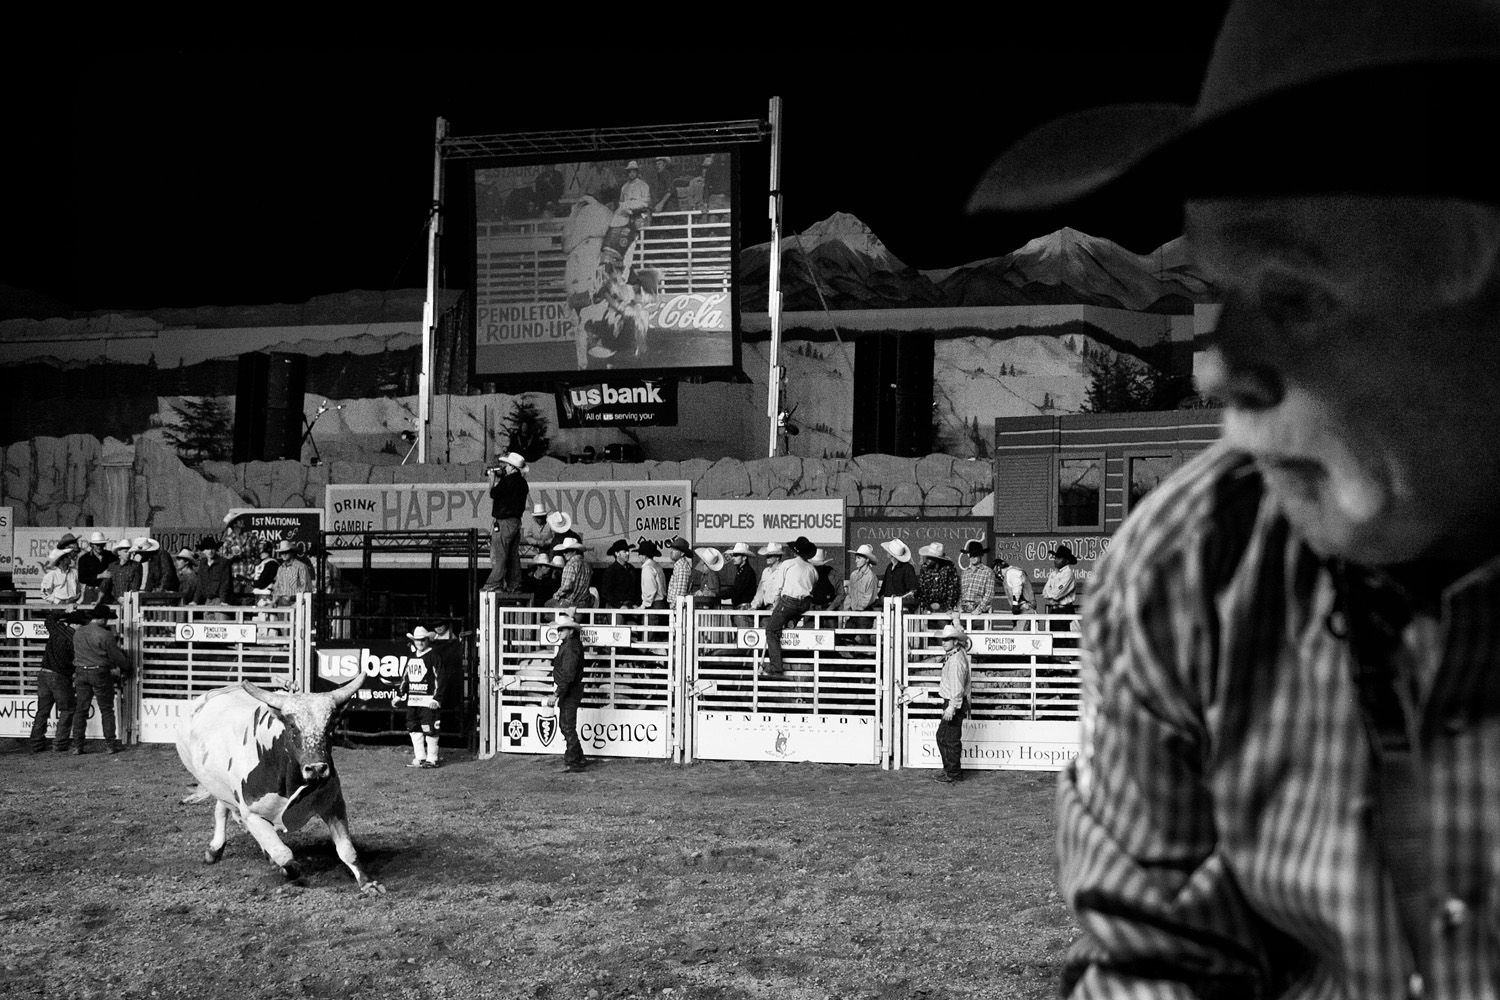 Bulls attack because of trained response, agitation and movement of others around them. During the bull-riding event, rodeo clowns, as well as professional photographers like this man, may attract the bull's attention.